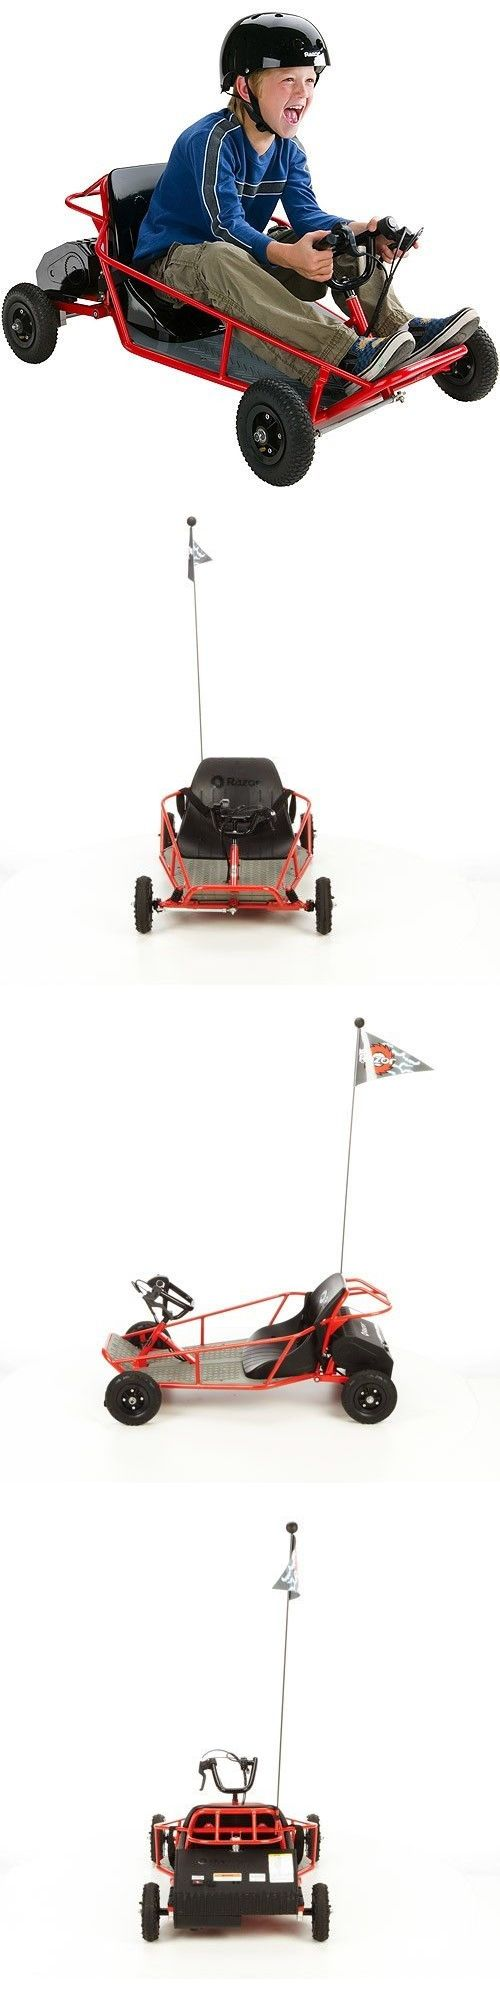 Complete Go-Karts and Frames 64656: Kids Go Kart Children Electric Car Running Vehicle Runner Racing Drive Games Fun -> BUY IT NOW ONLY: $387.99 on eBay!